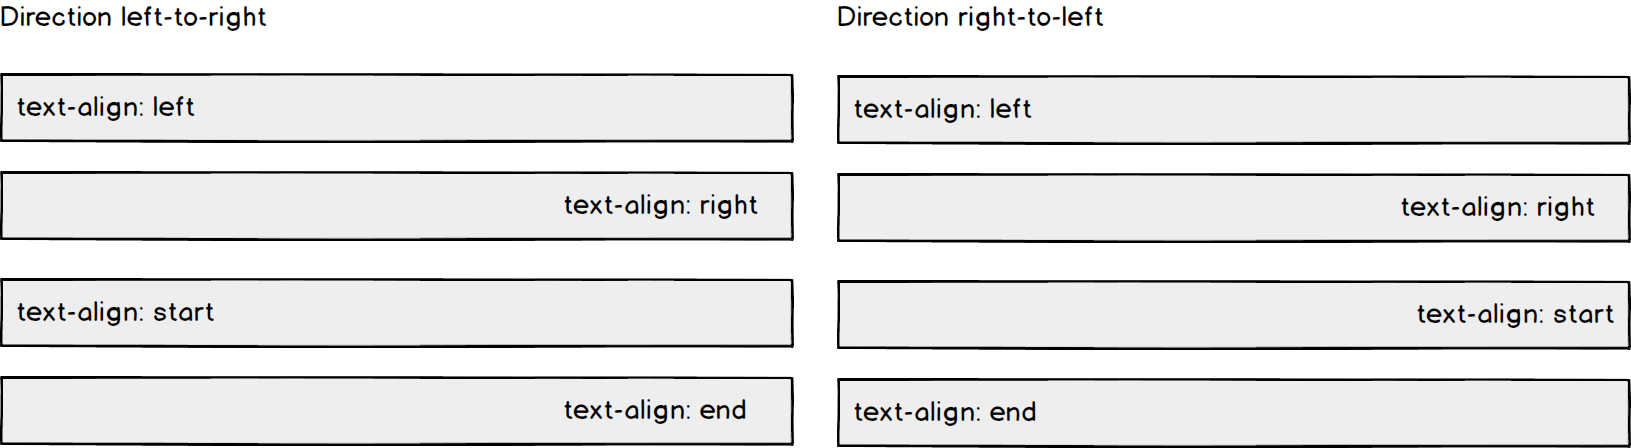 Wireframe showing different text alignment options